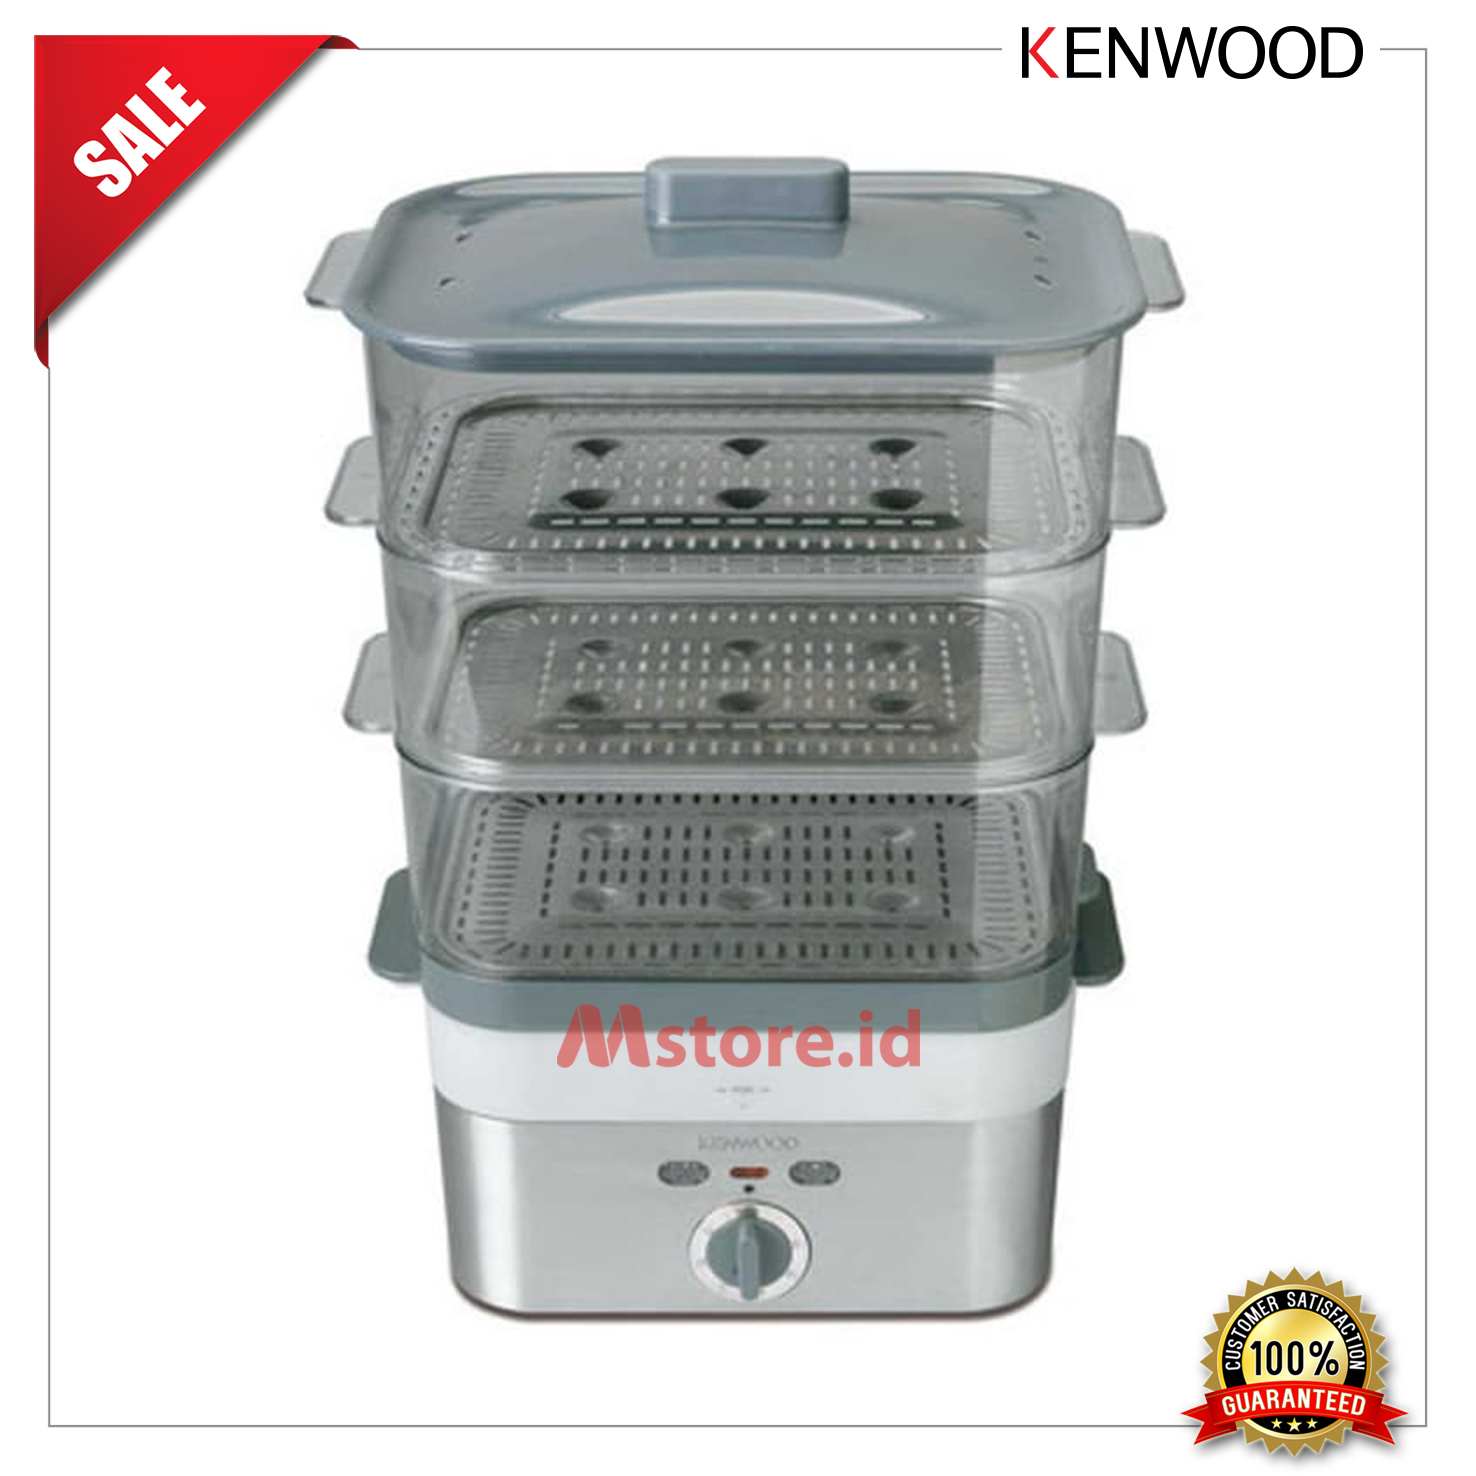 KENWOOD_FS620_FOOD STEAMER_mstore id_multimayaka